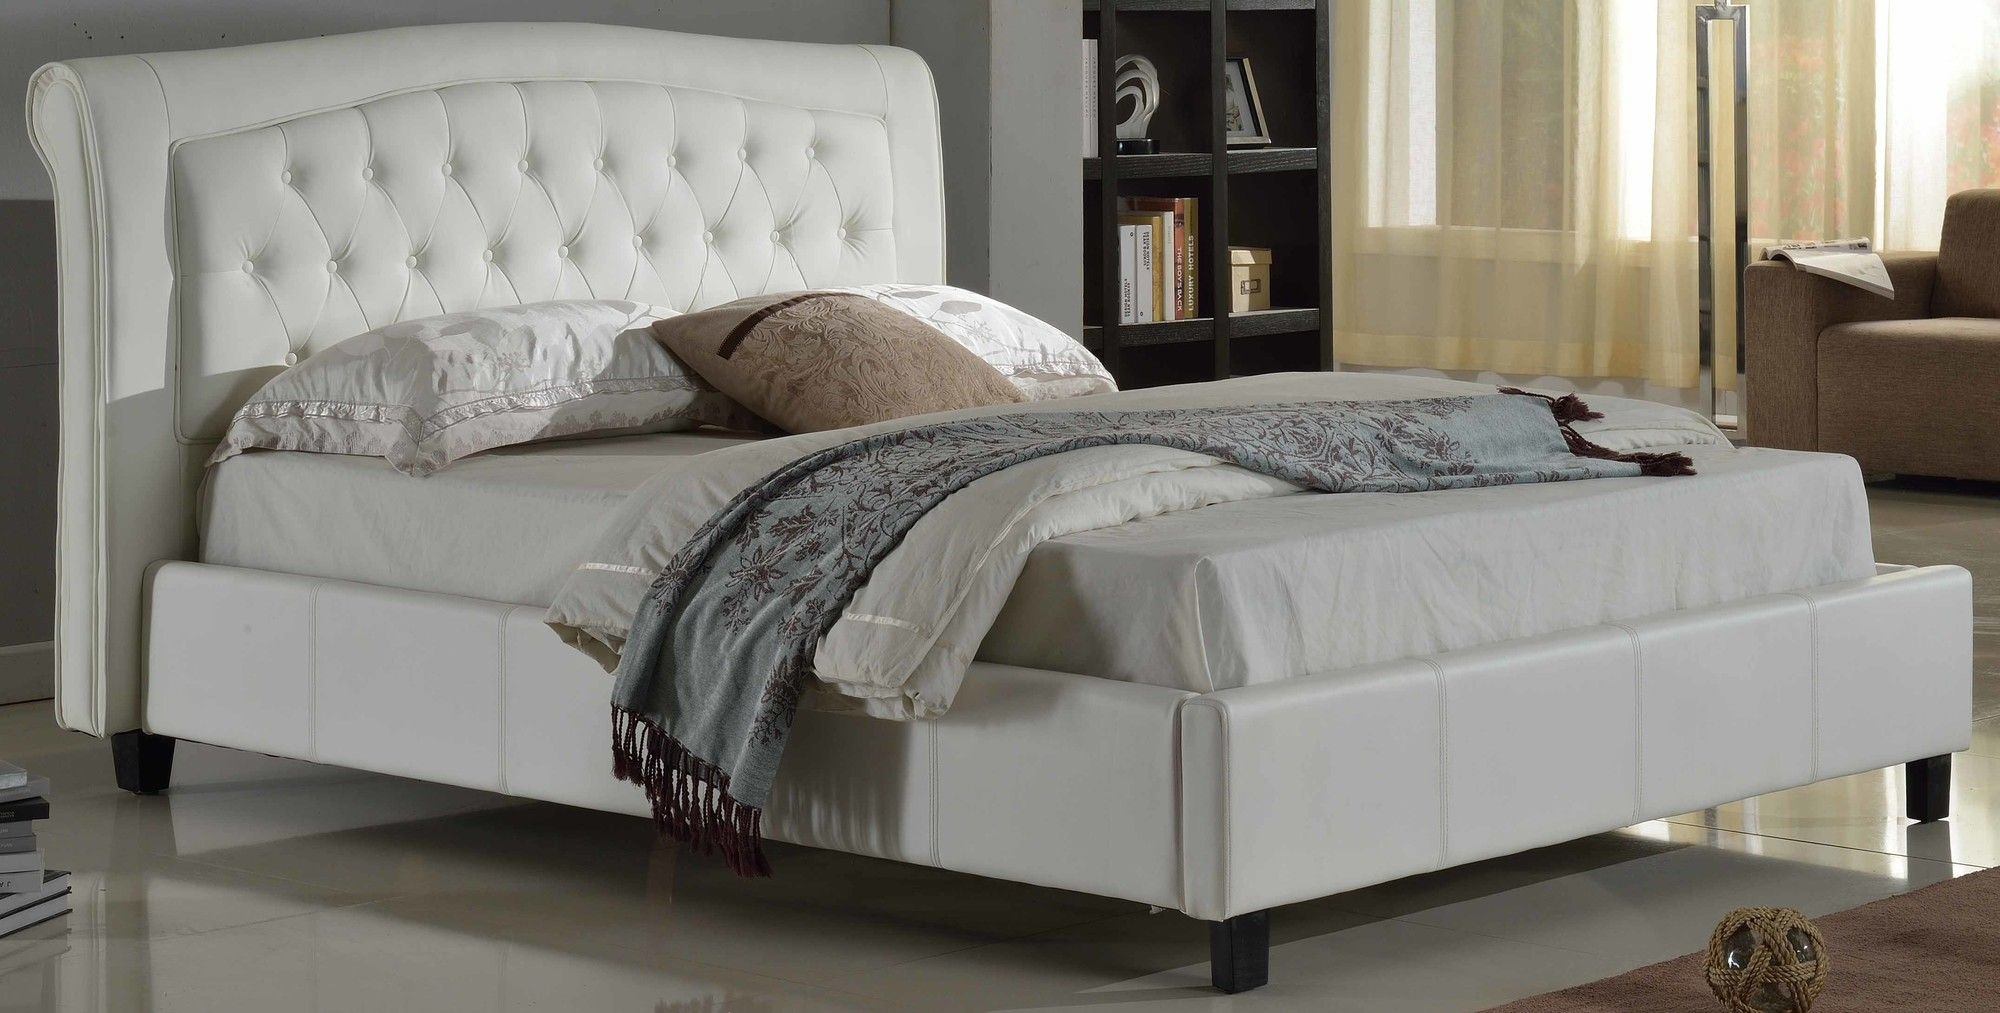 brookby design comfy to upholstered house reviews platform joss applied place main your within accessories bed